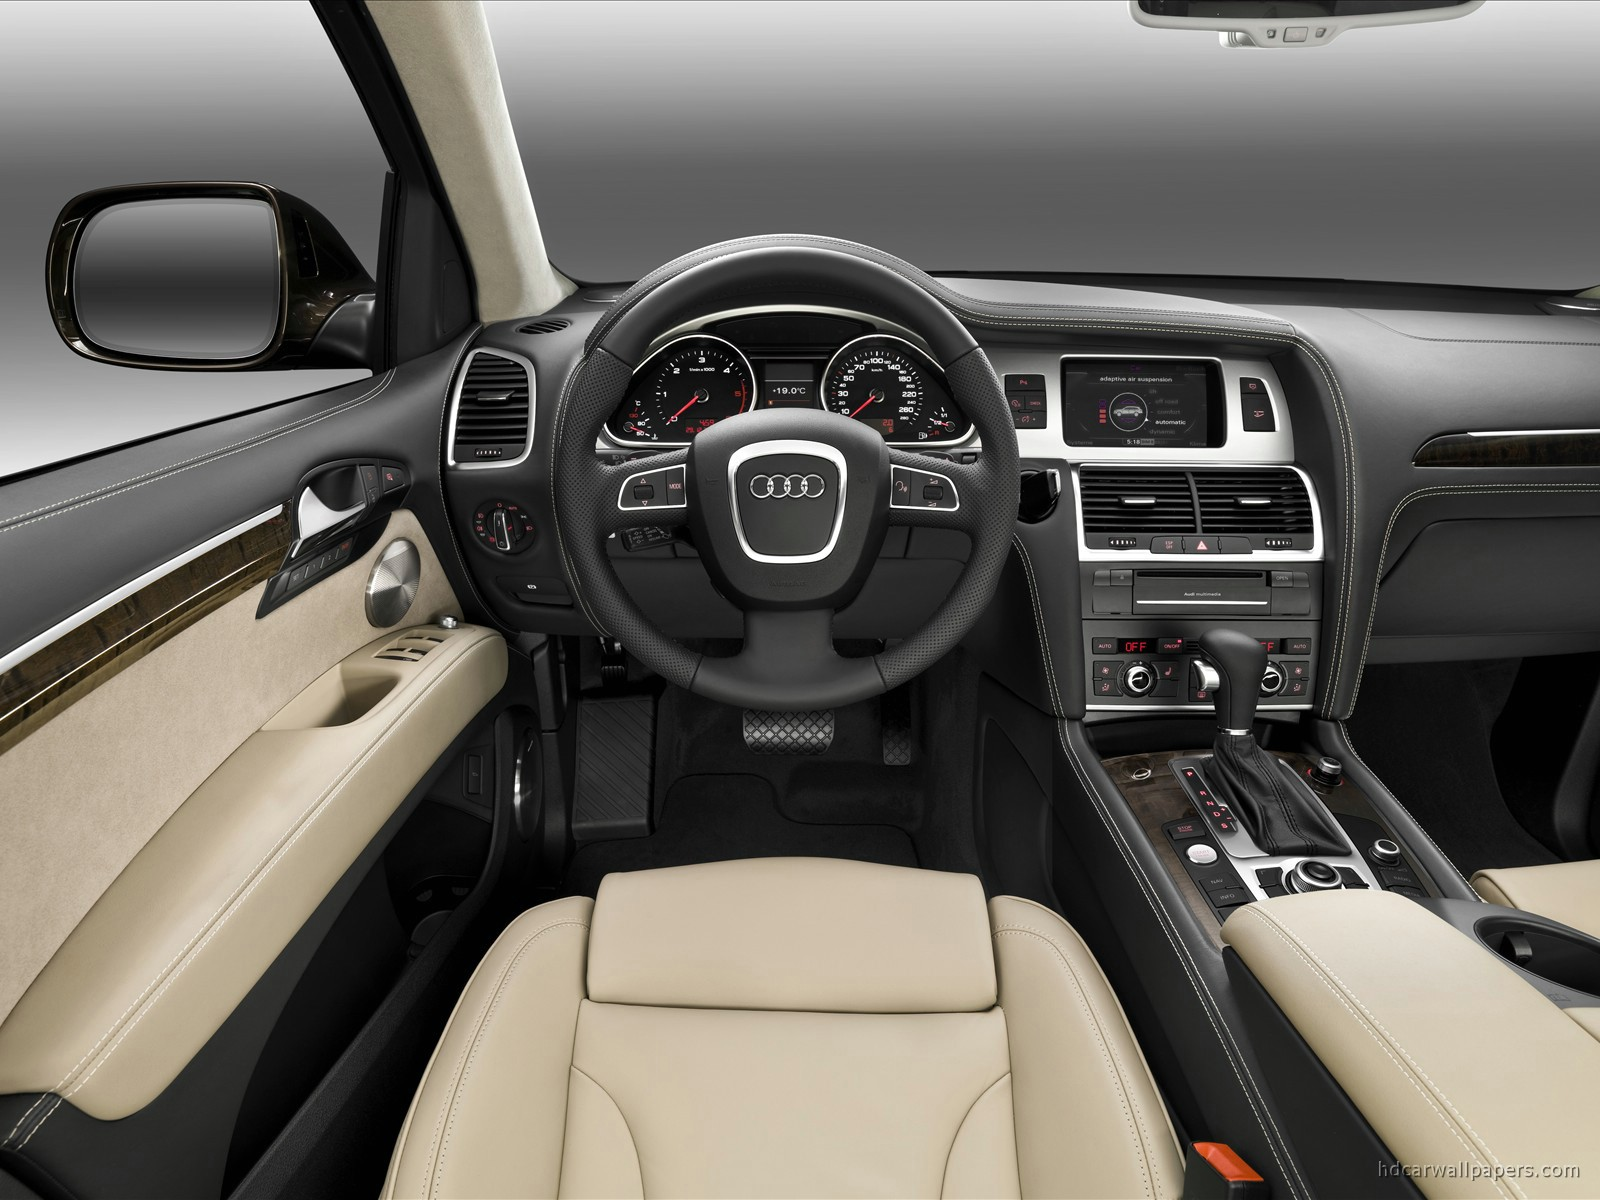 2010 Audi Q7 Interior Wallpaper Hd Car Wallpapers Id 203